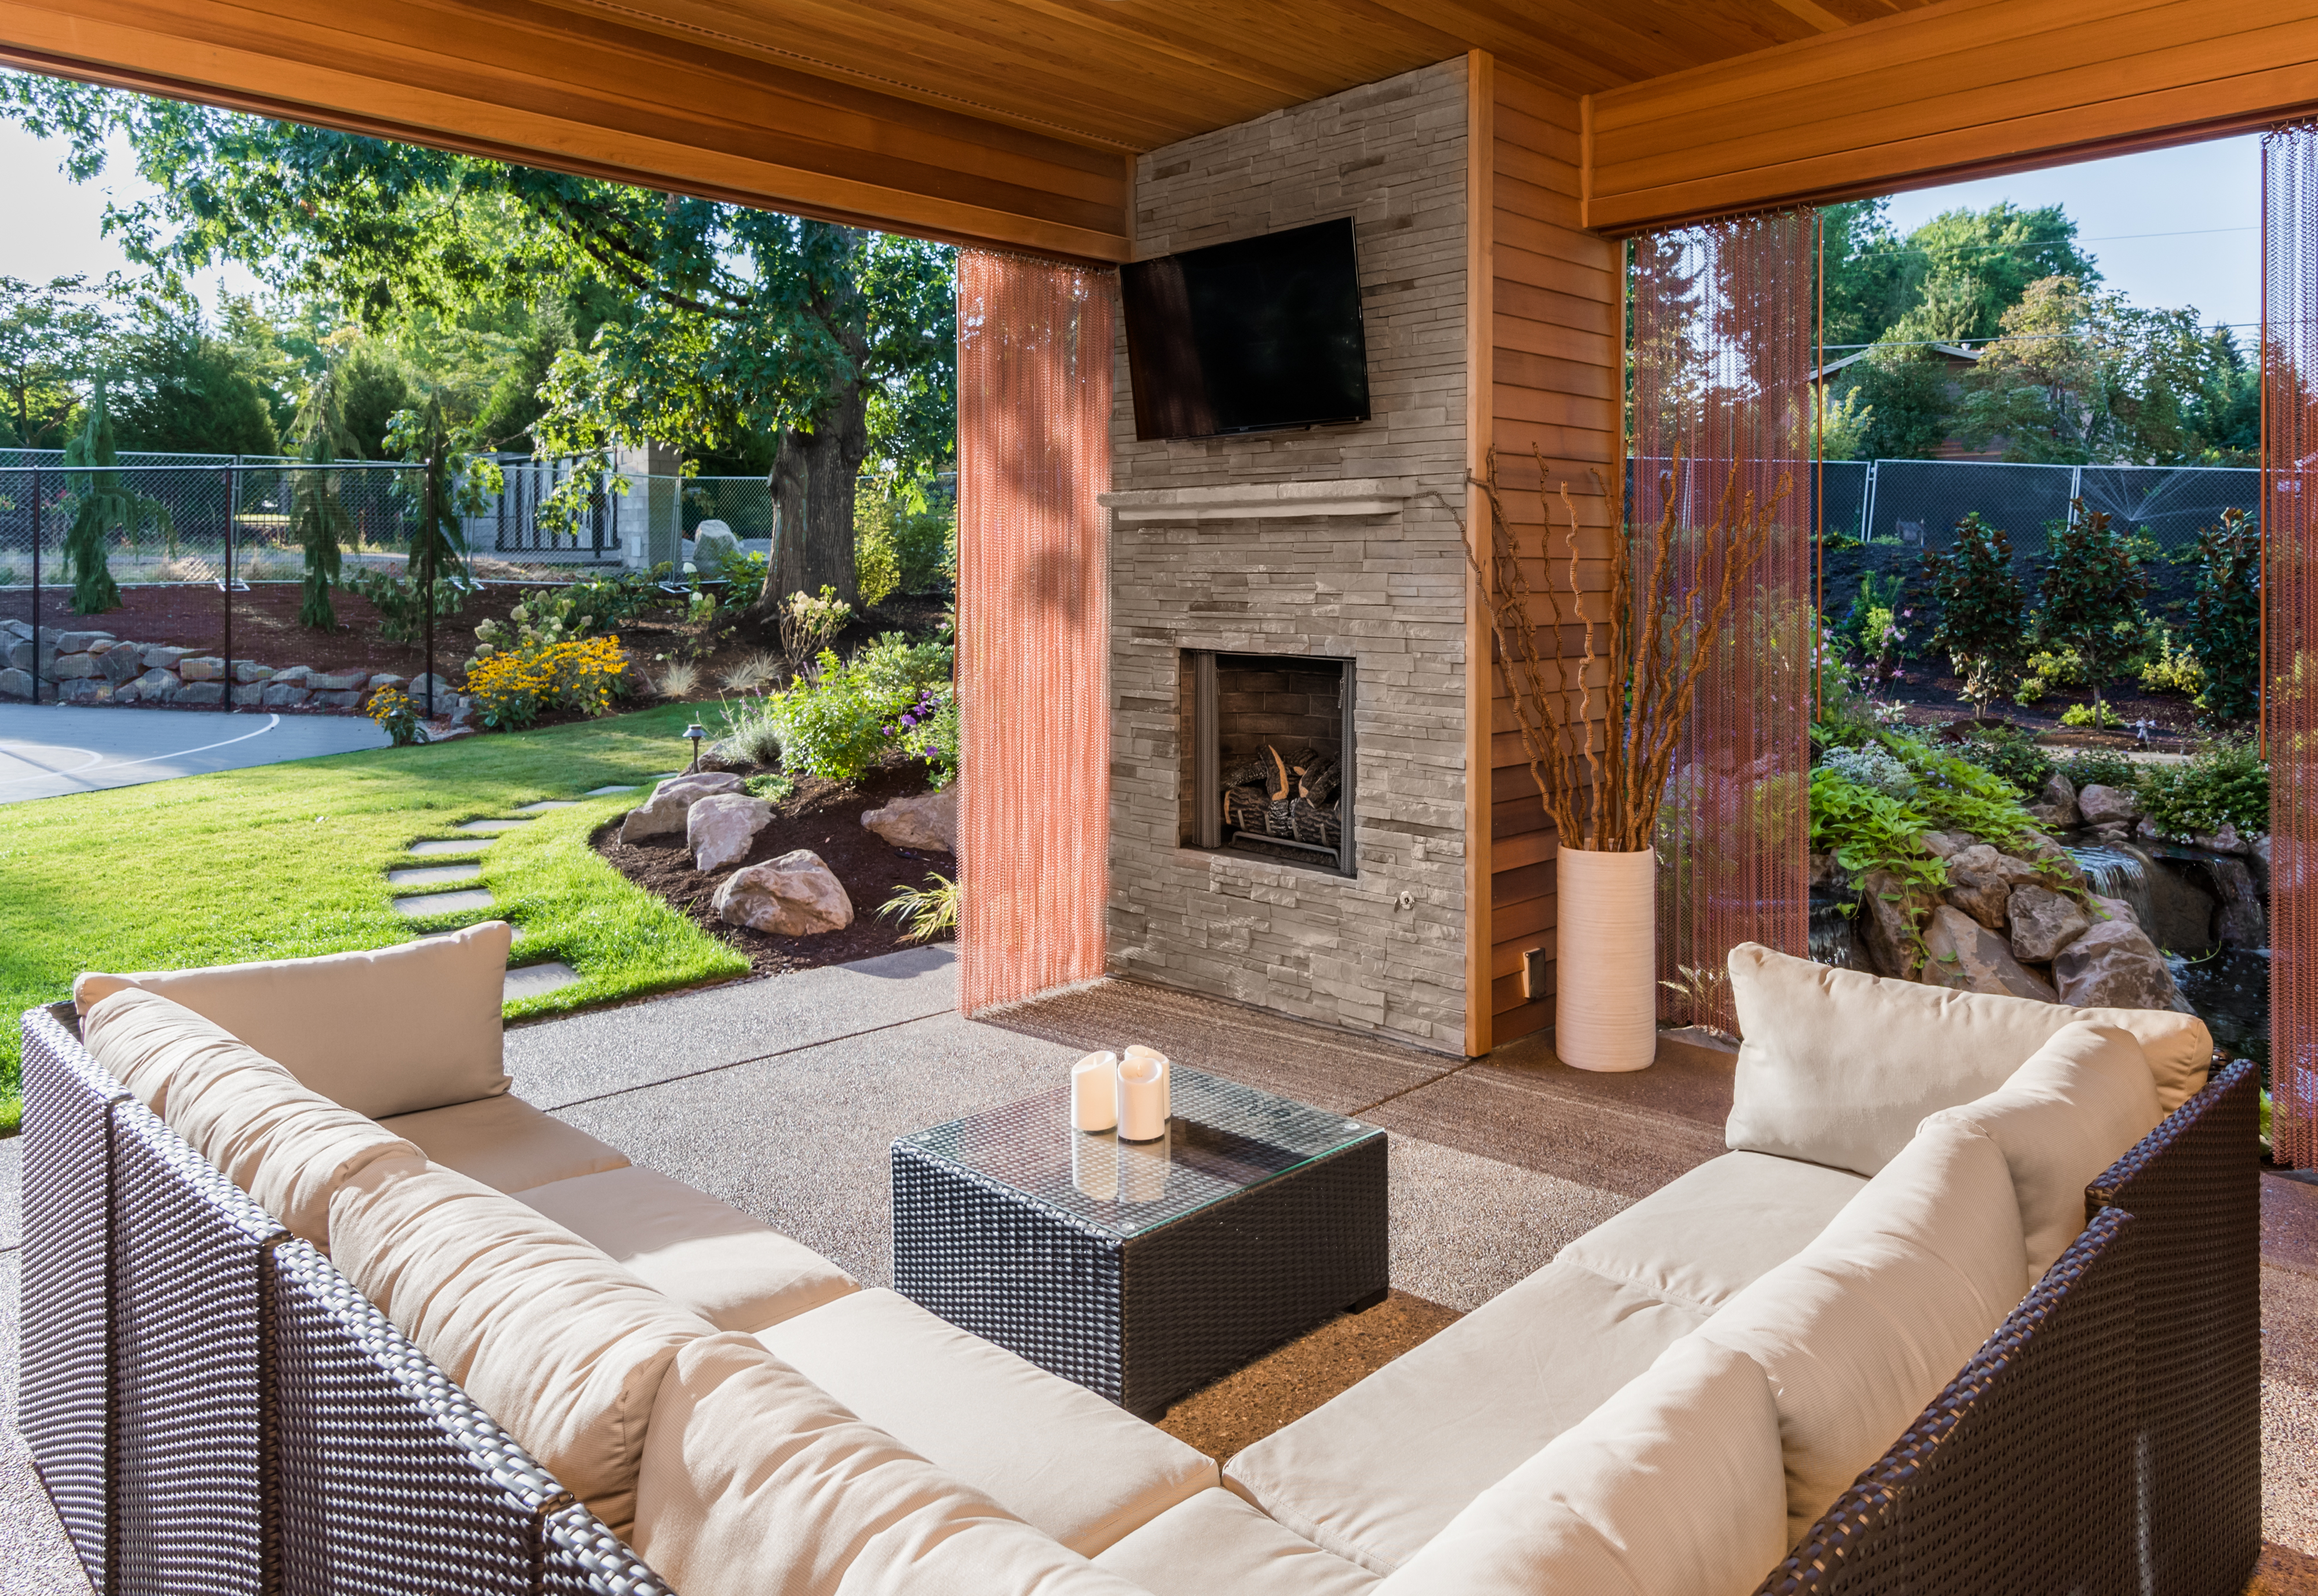 Outdoor spaces and fireplaces.